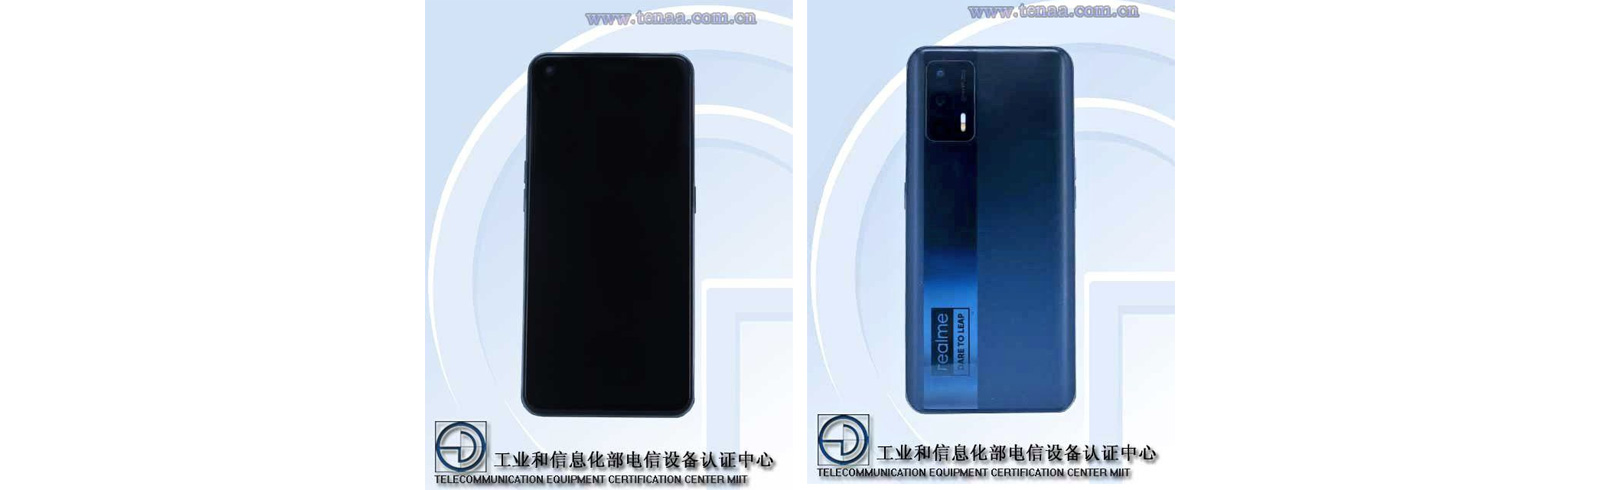 Realme GT Neo is certified by TENAA, appears on a Chinese retailer's website